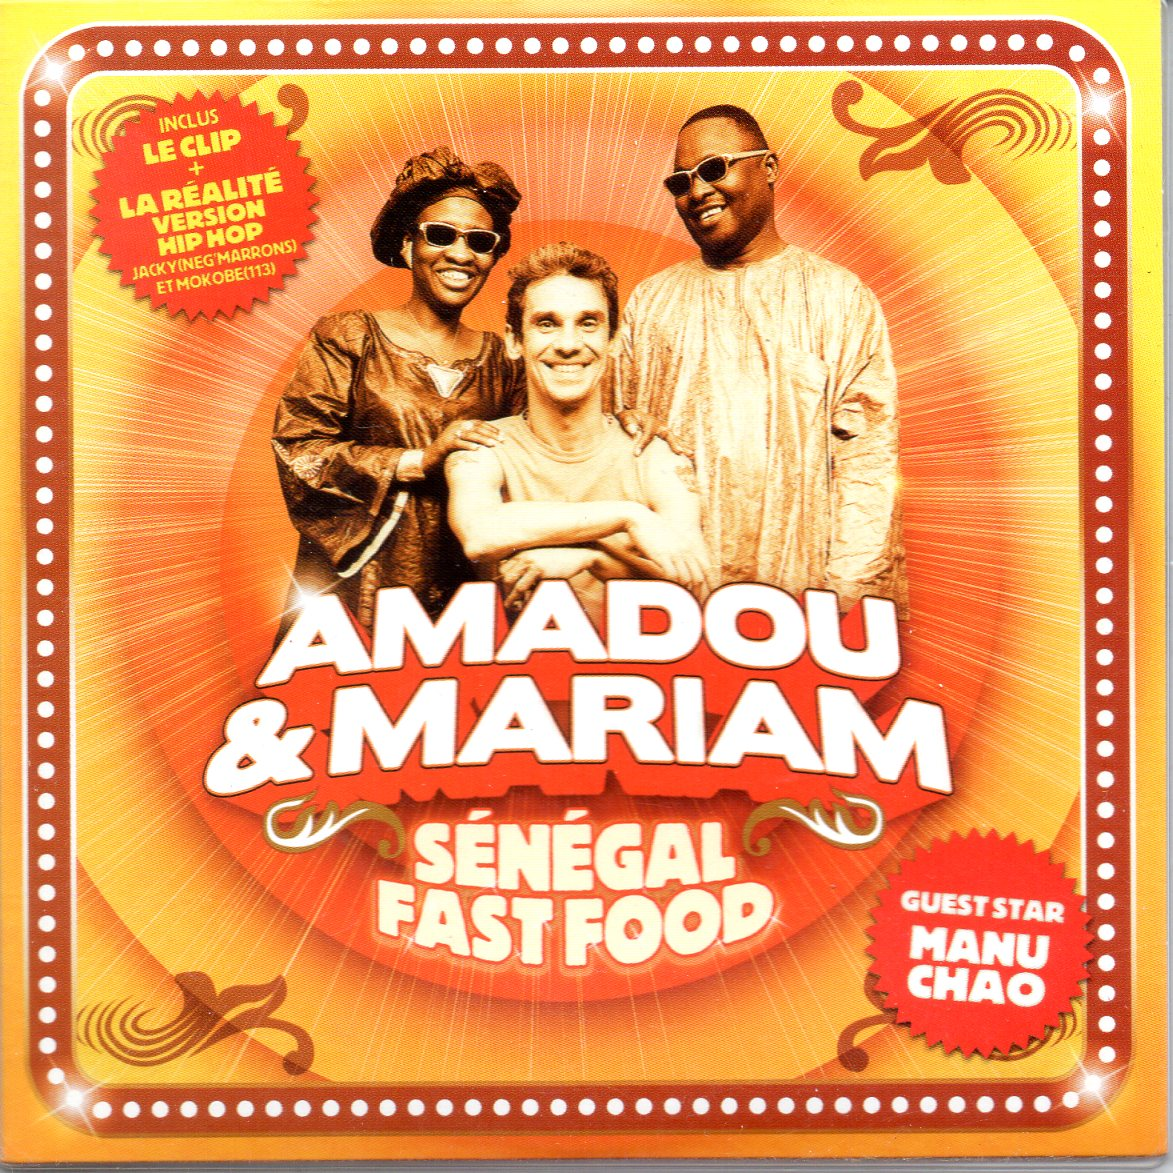 MANU CHAO & AMADOU & MARIAM - Senegal fast food 3-track CARD SLEEVE - CD single